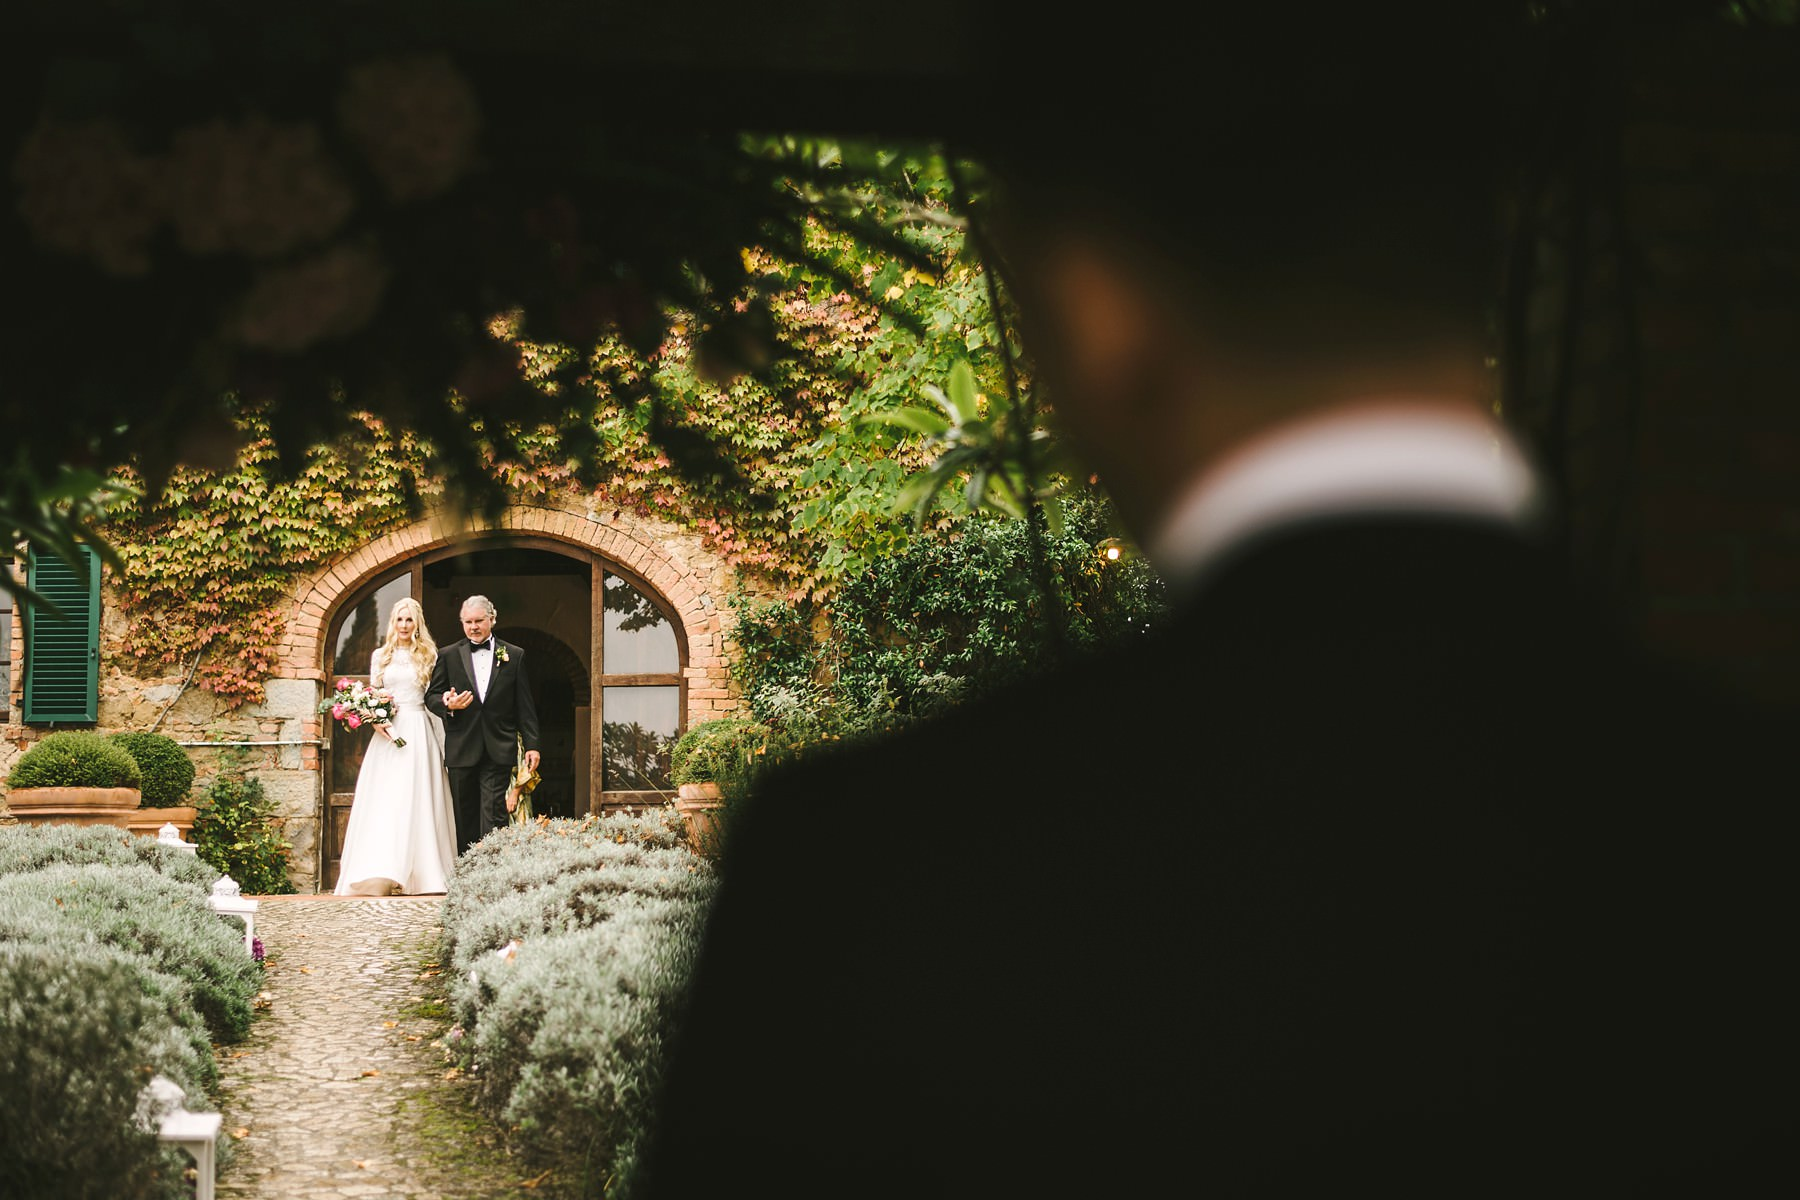 Bride and groom first look during outdoor ceremony in Tuscany